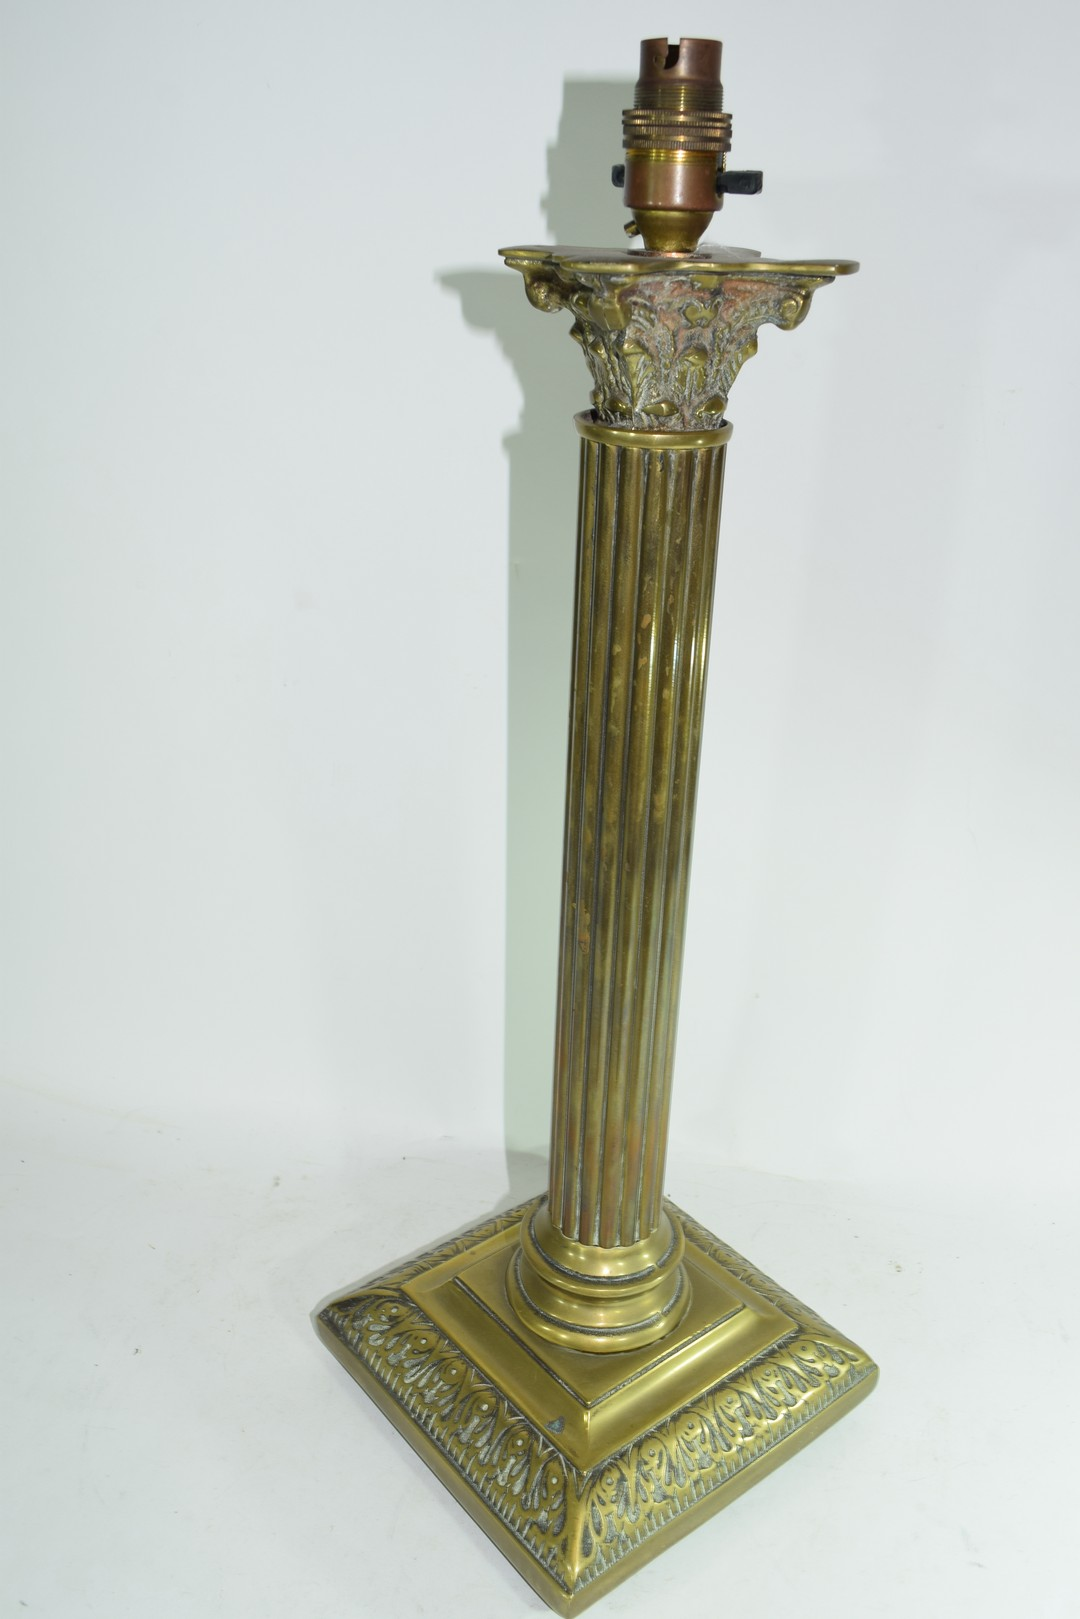 Brass table lamp - Image 3 of 4